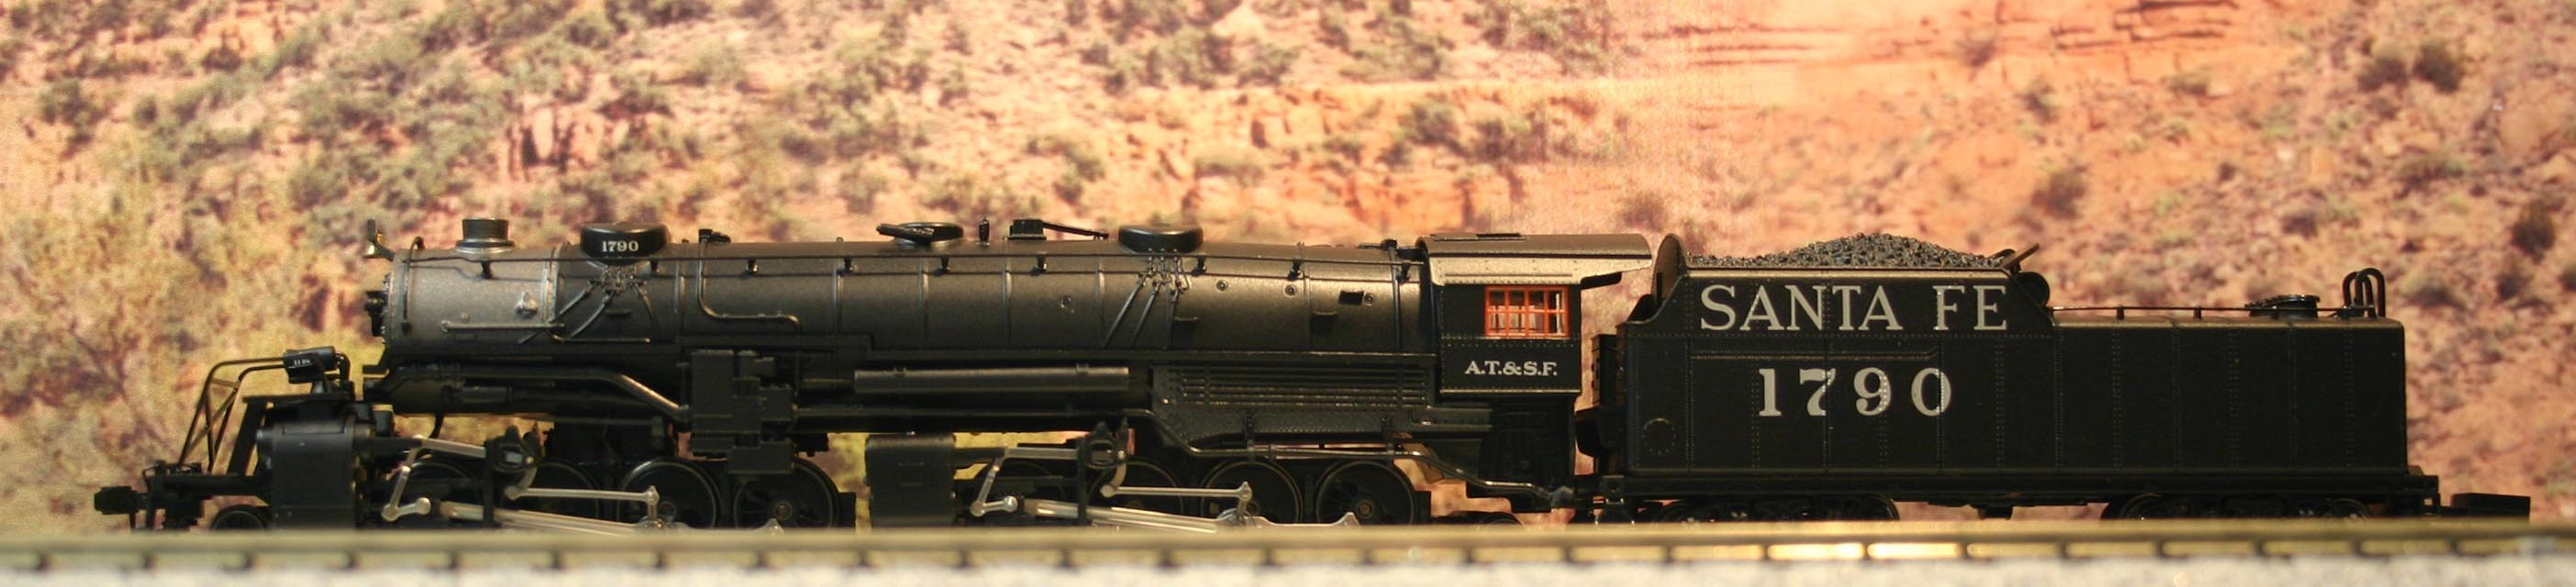 Scale steam locomotives for sale n scale steam locomotives - Steam On Sale 433 7526 Lifelike 2 8 8 2 N W 2019